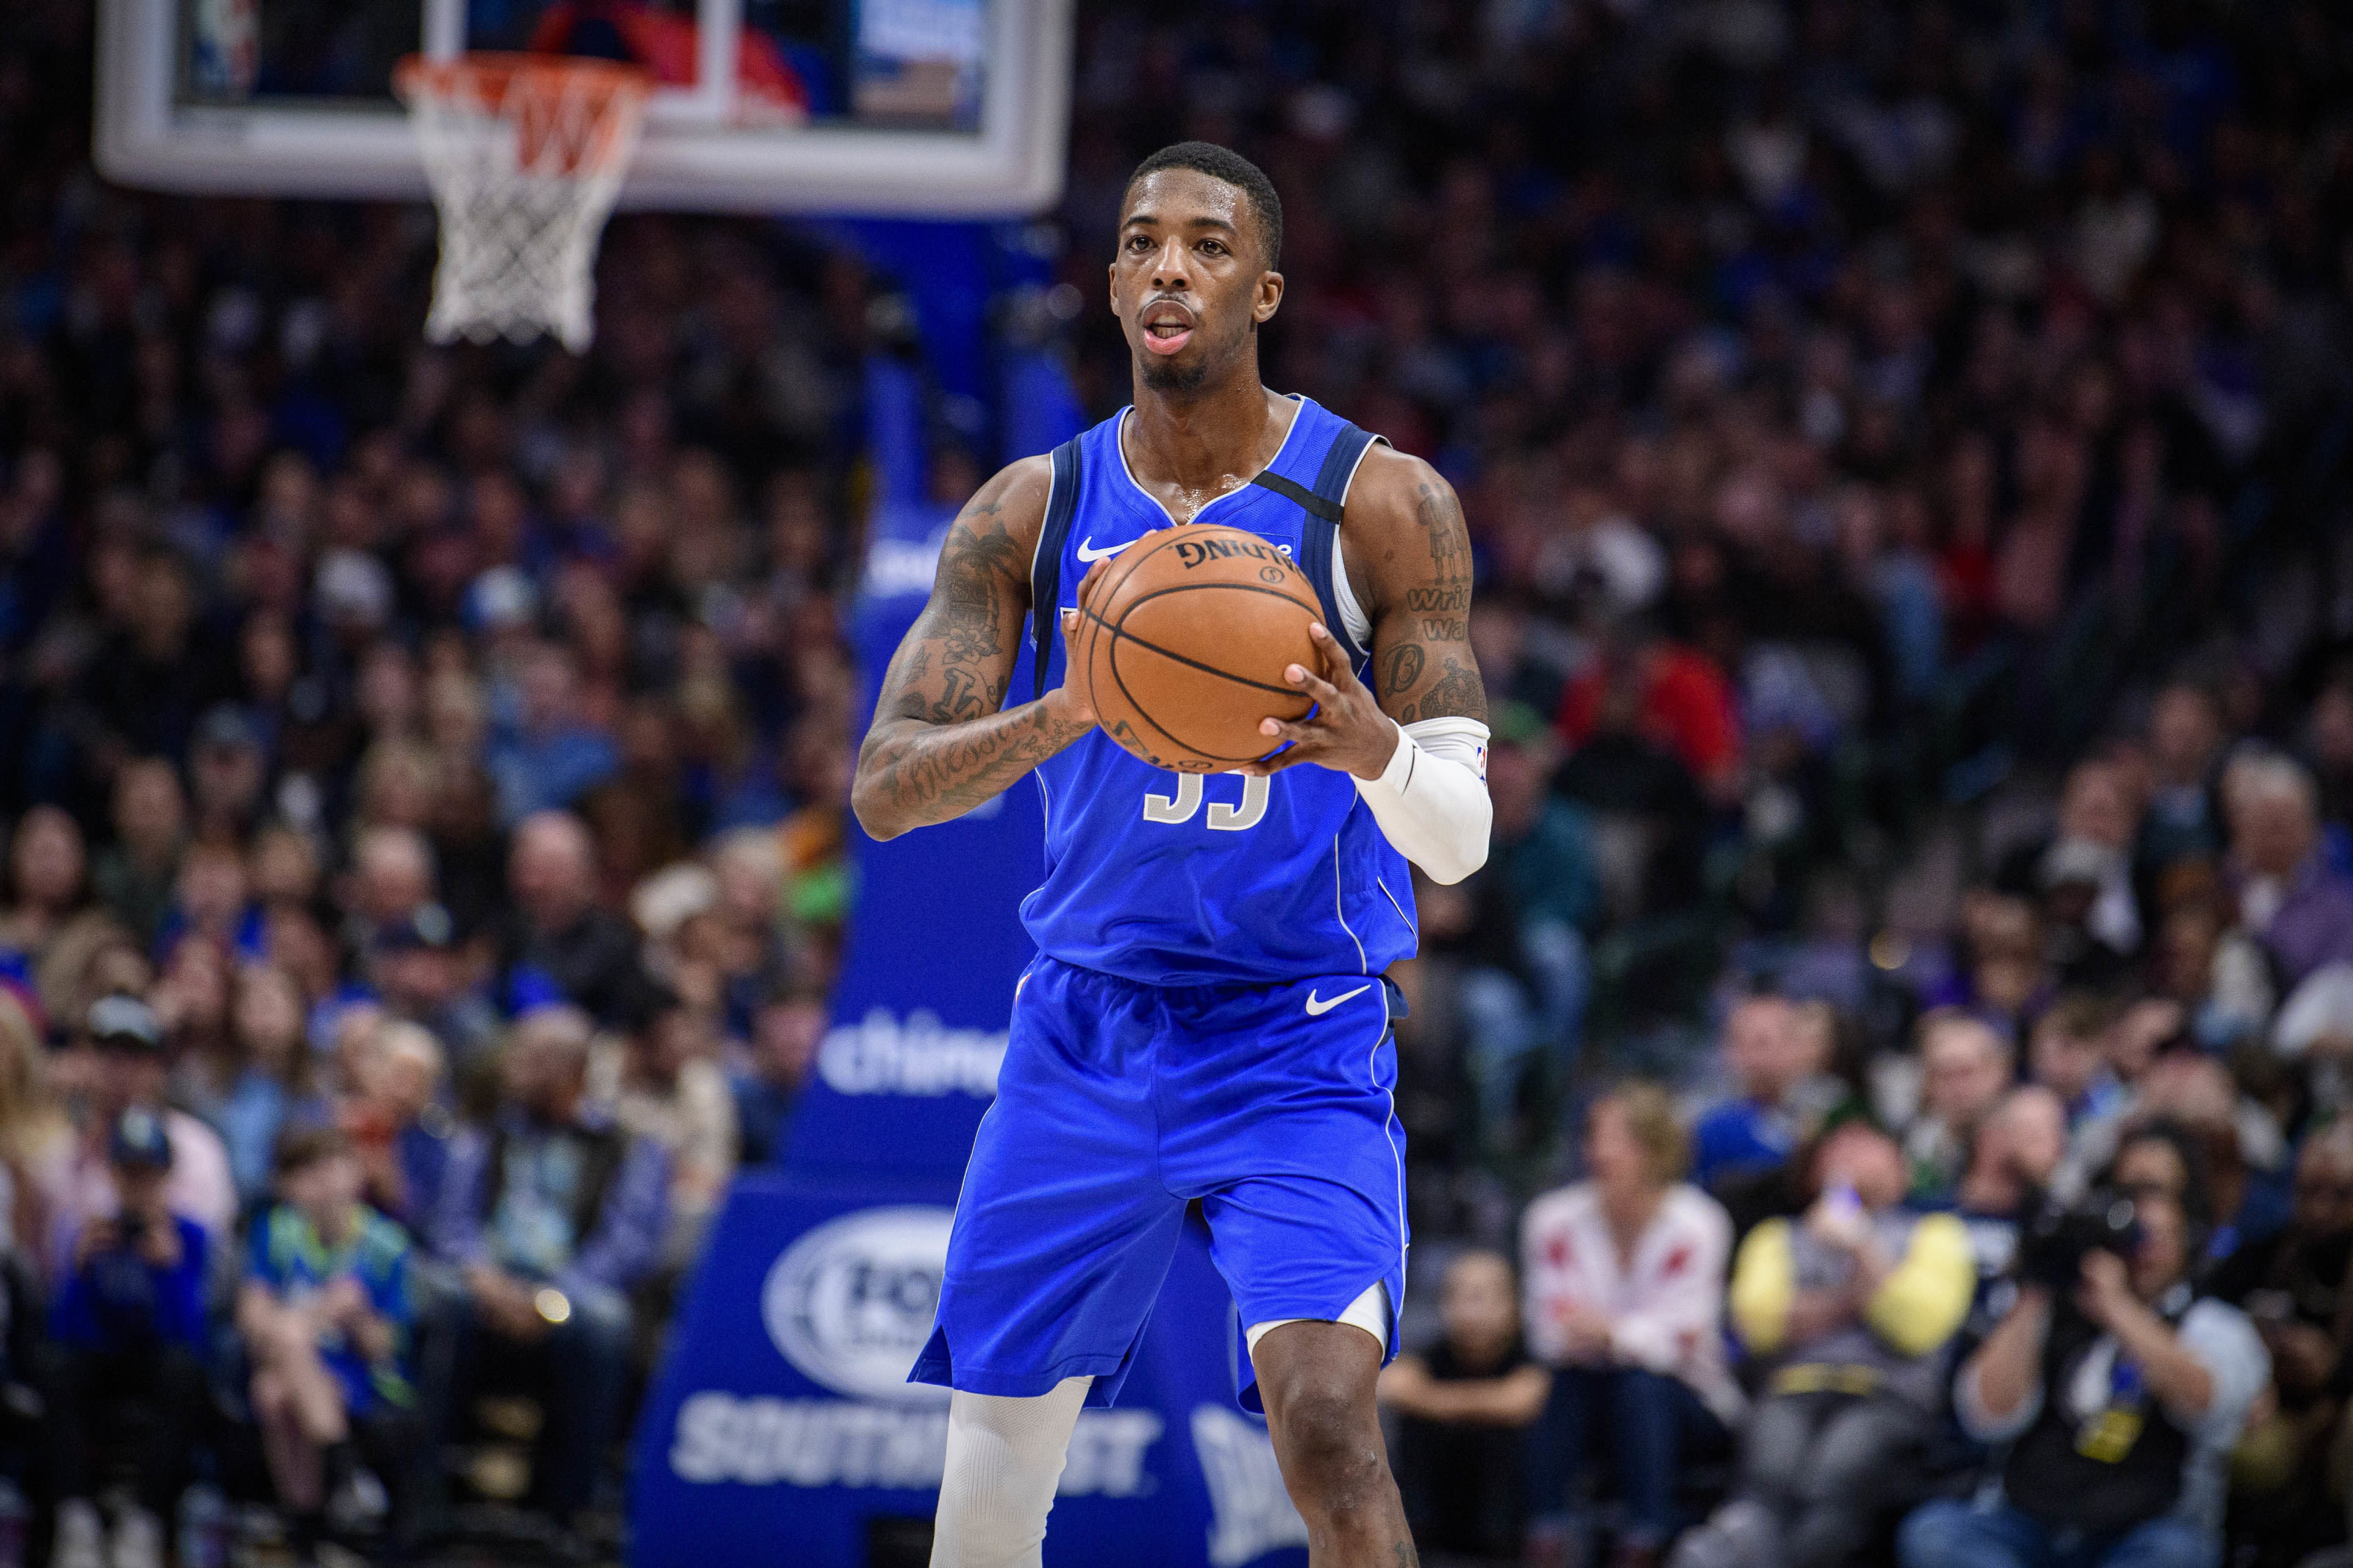 Dallas Mavericks, Delon Wright